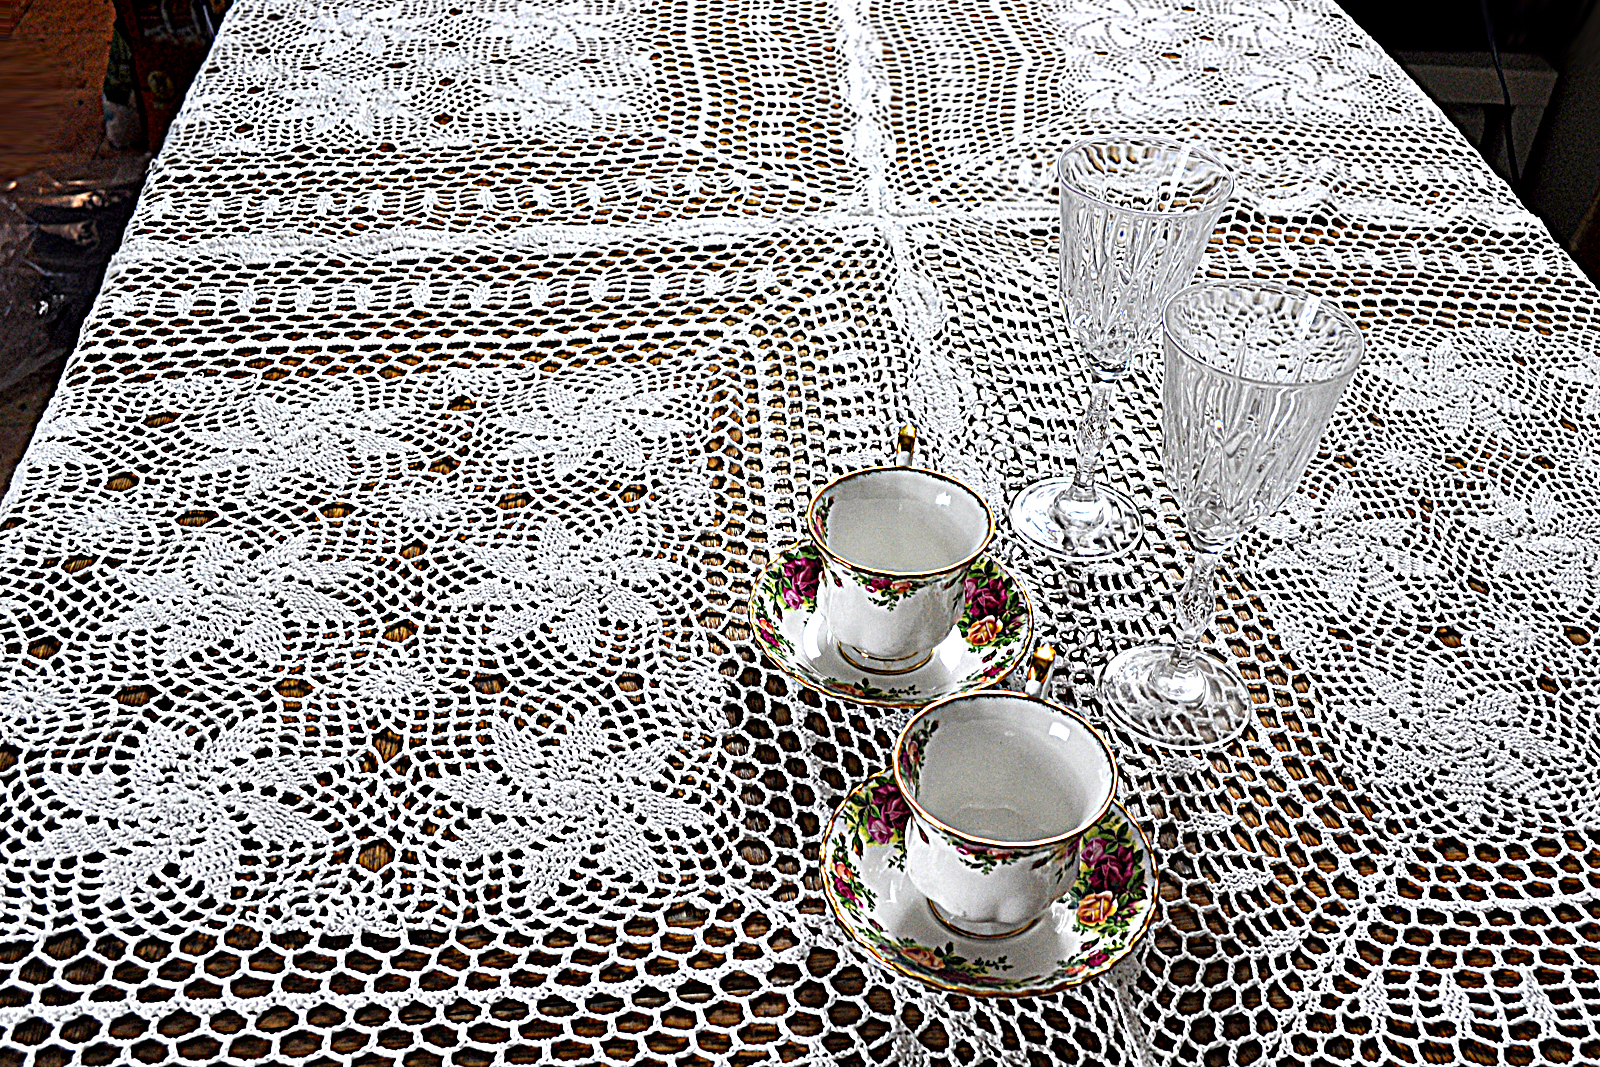 Handmade Crochet Lace Tablecloth Living Room Runner Cover Table